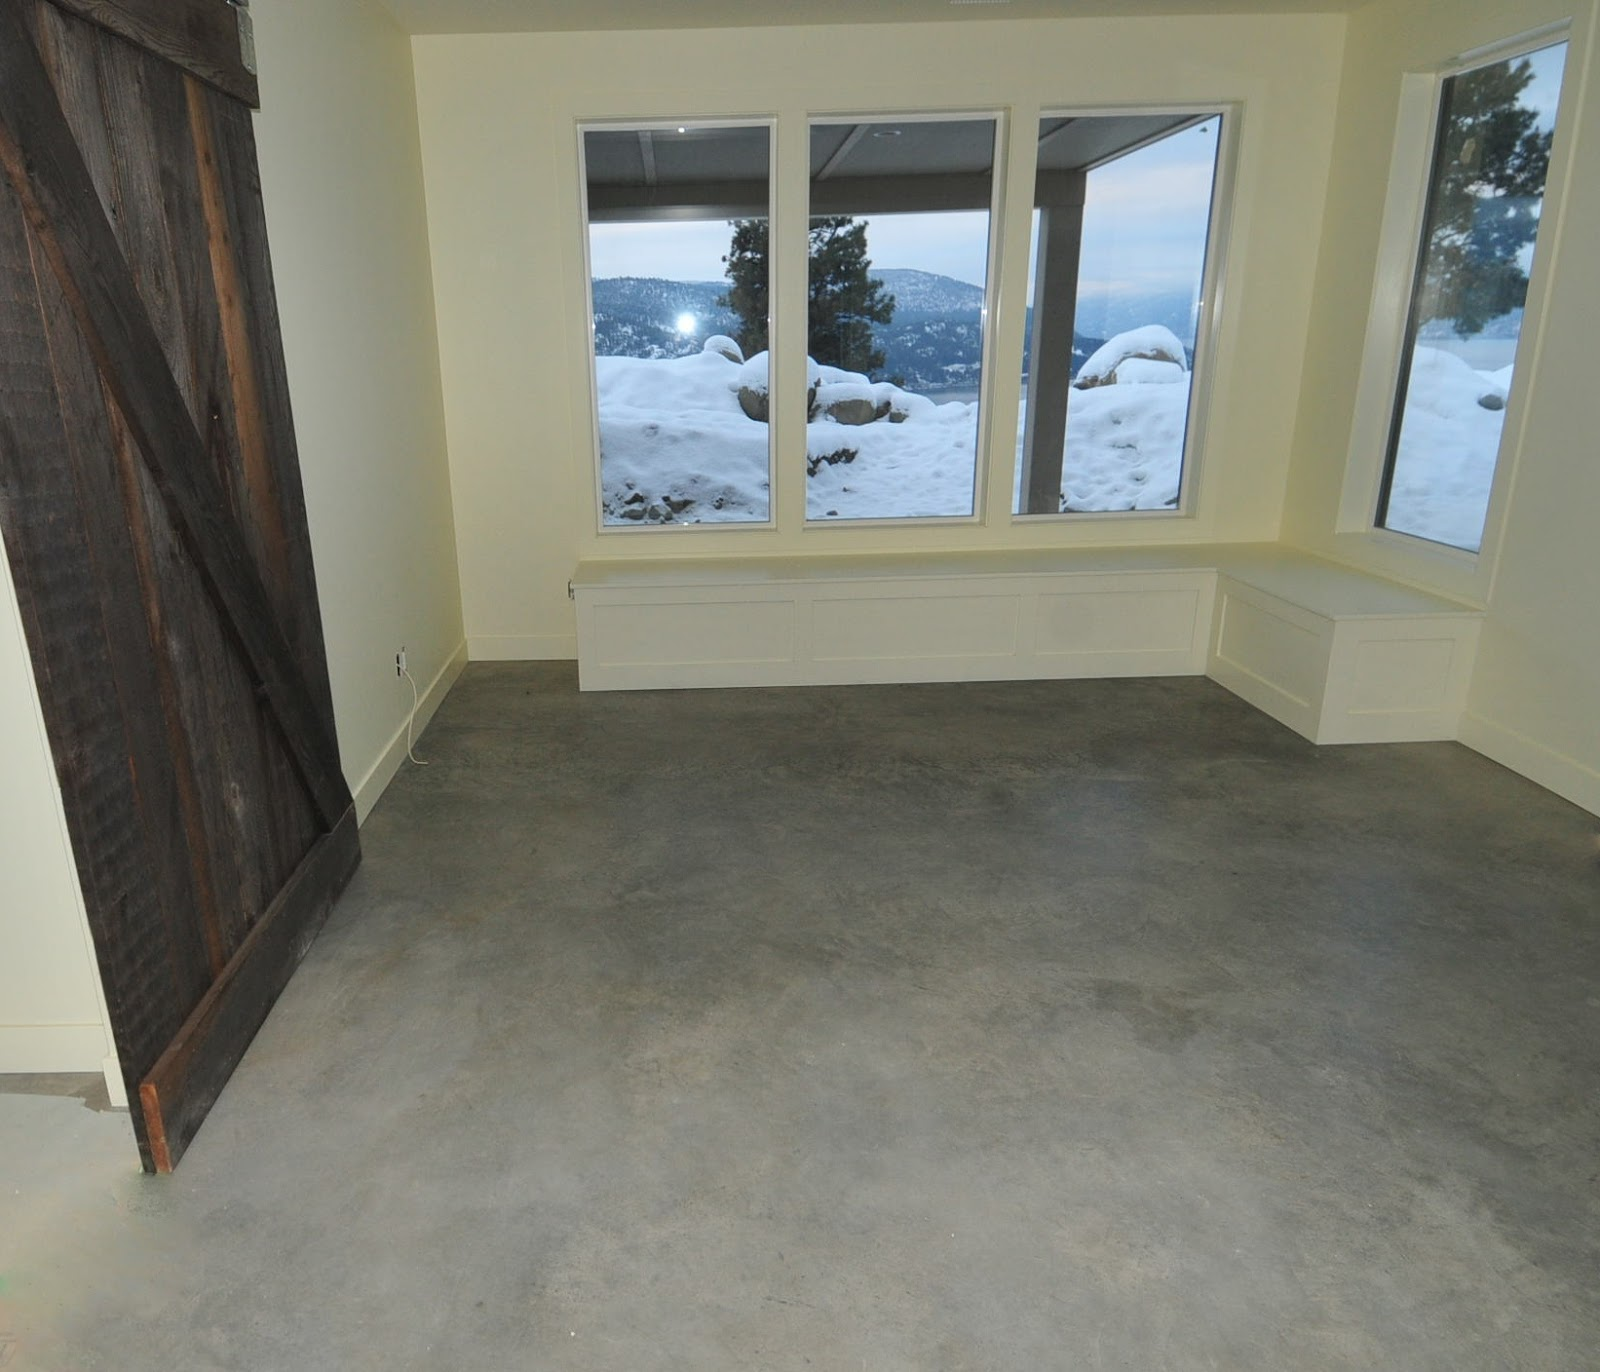 The Best Basement Flooring Options: MODE CONCRETE: Basement Concrete Floors Naturally Look Amazing And Modern